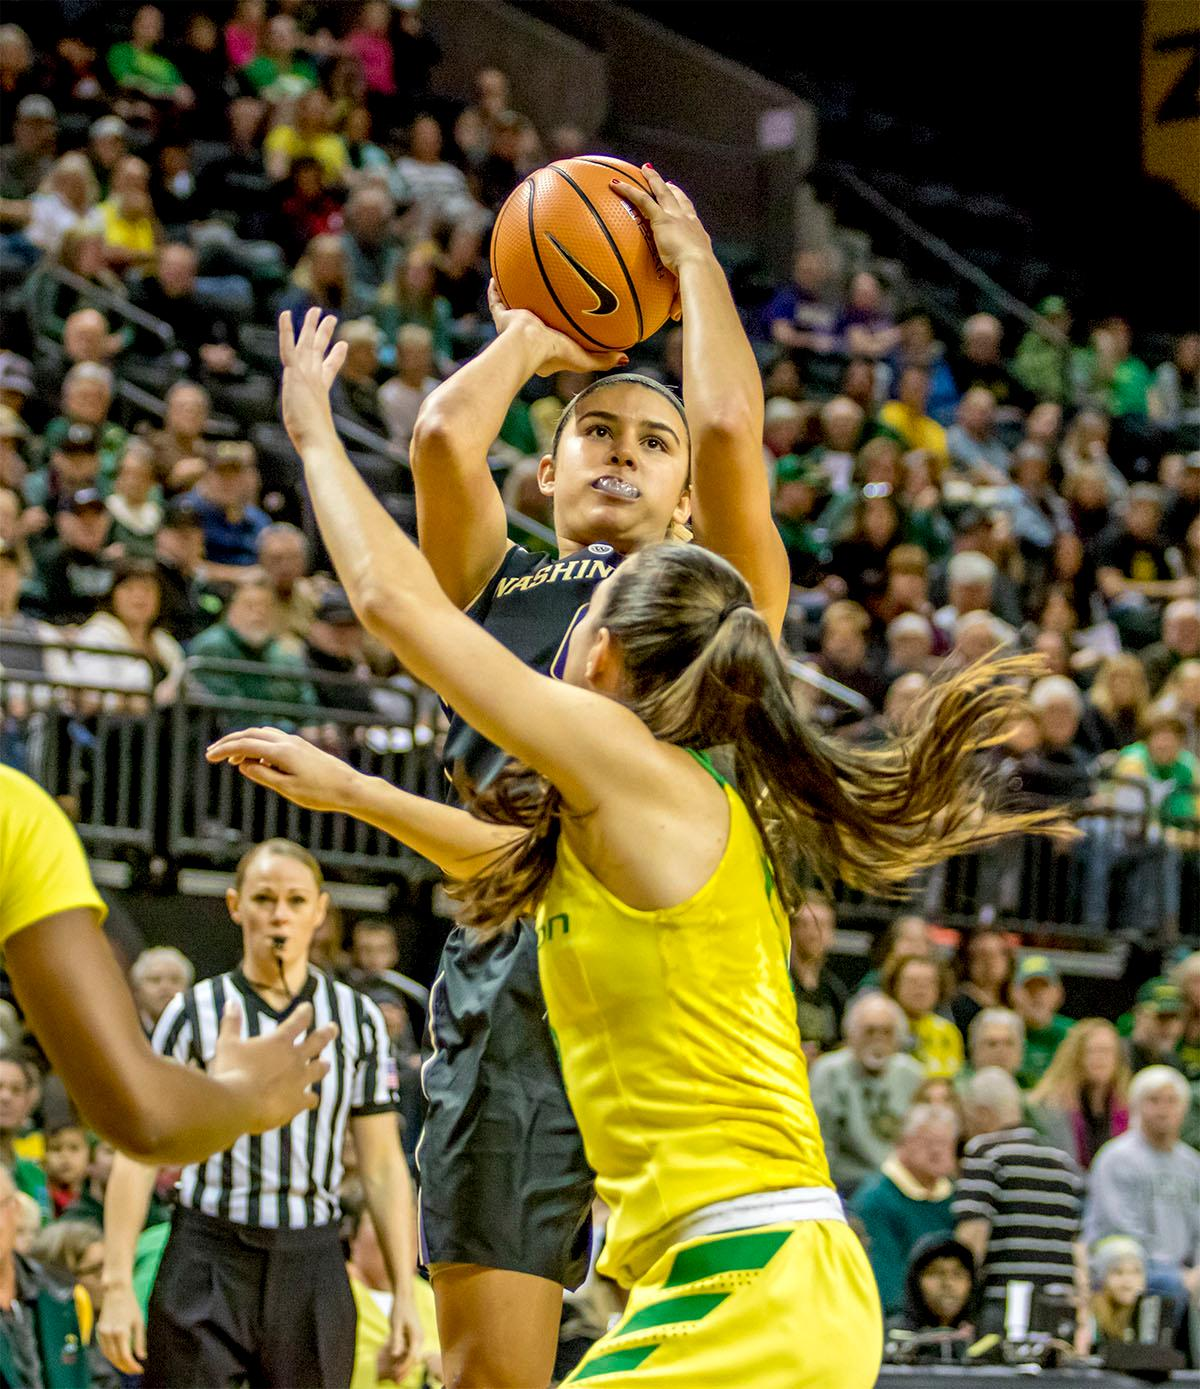 The Huskies' Amber Melgoza (#4) goes up for a shot against the Ducks. The Oregon Ducks defeated the Washington Huskies 94-83 on Sunday at Matthew Knight Arena. The victory was Head Coach Kelly Graves' 500th career win. Sabrina Ionescu also set the new NCAA all time record of 8 triple doubles in just 48 games. The previous record was 7 triple doubles in 124 games, held by Susie McConnell at Penn State. The Ducks will next face off against USC on Friday January 5th in Los Angeles. Photo by August Frank, Oregon News Lab